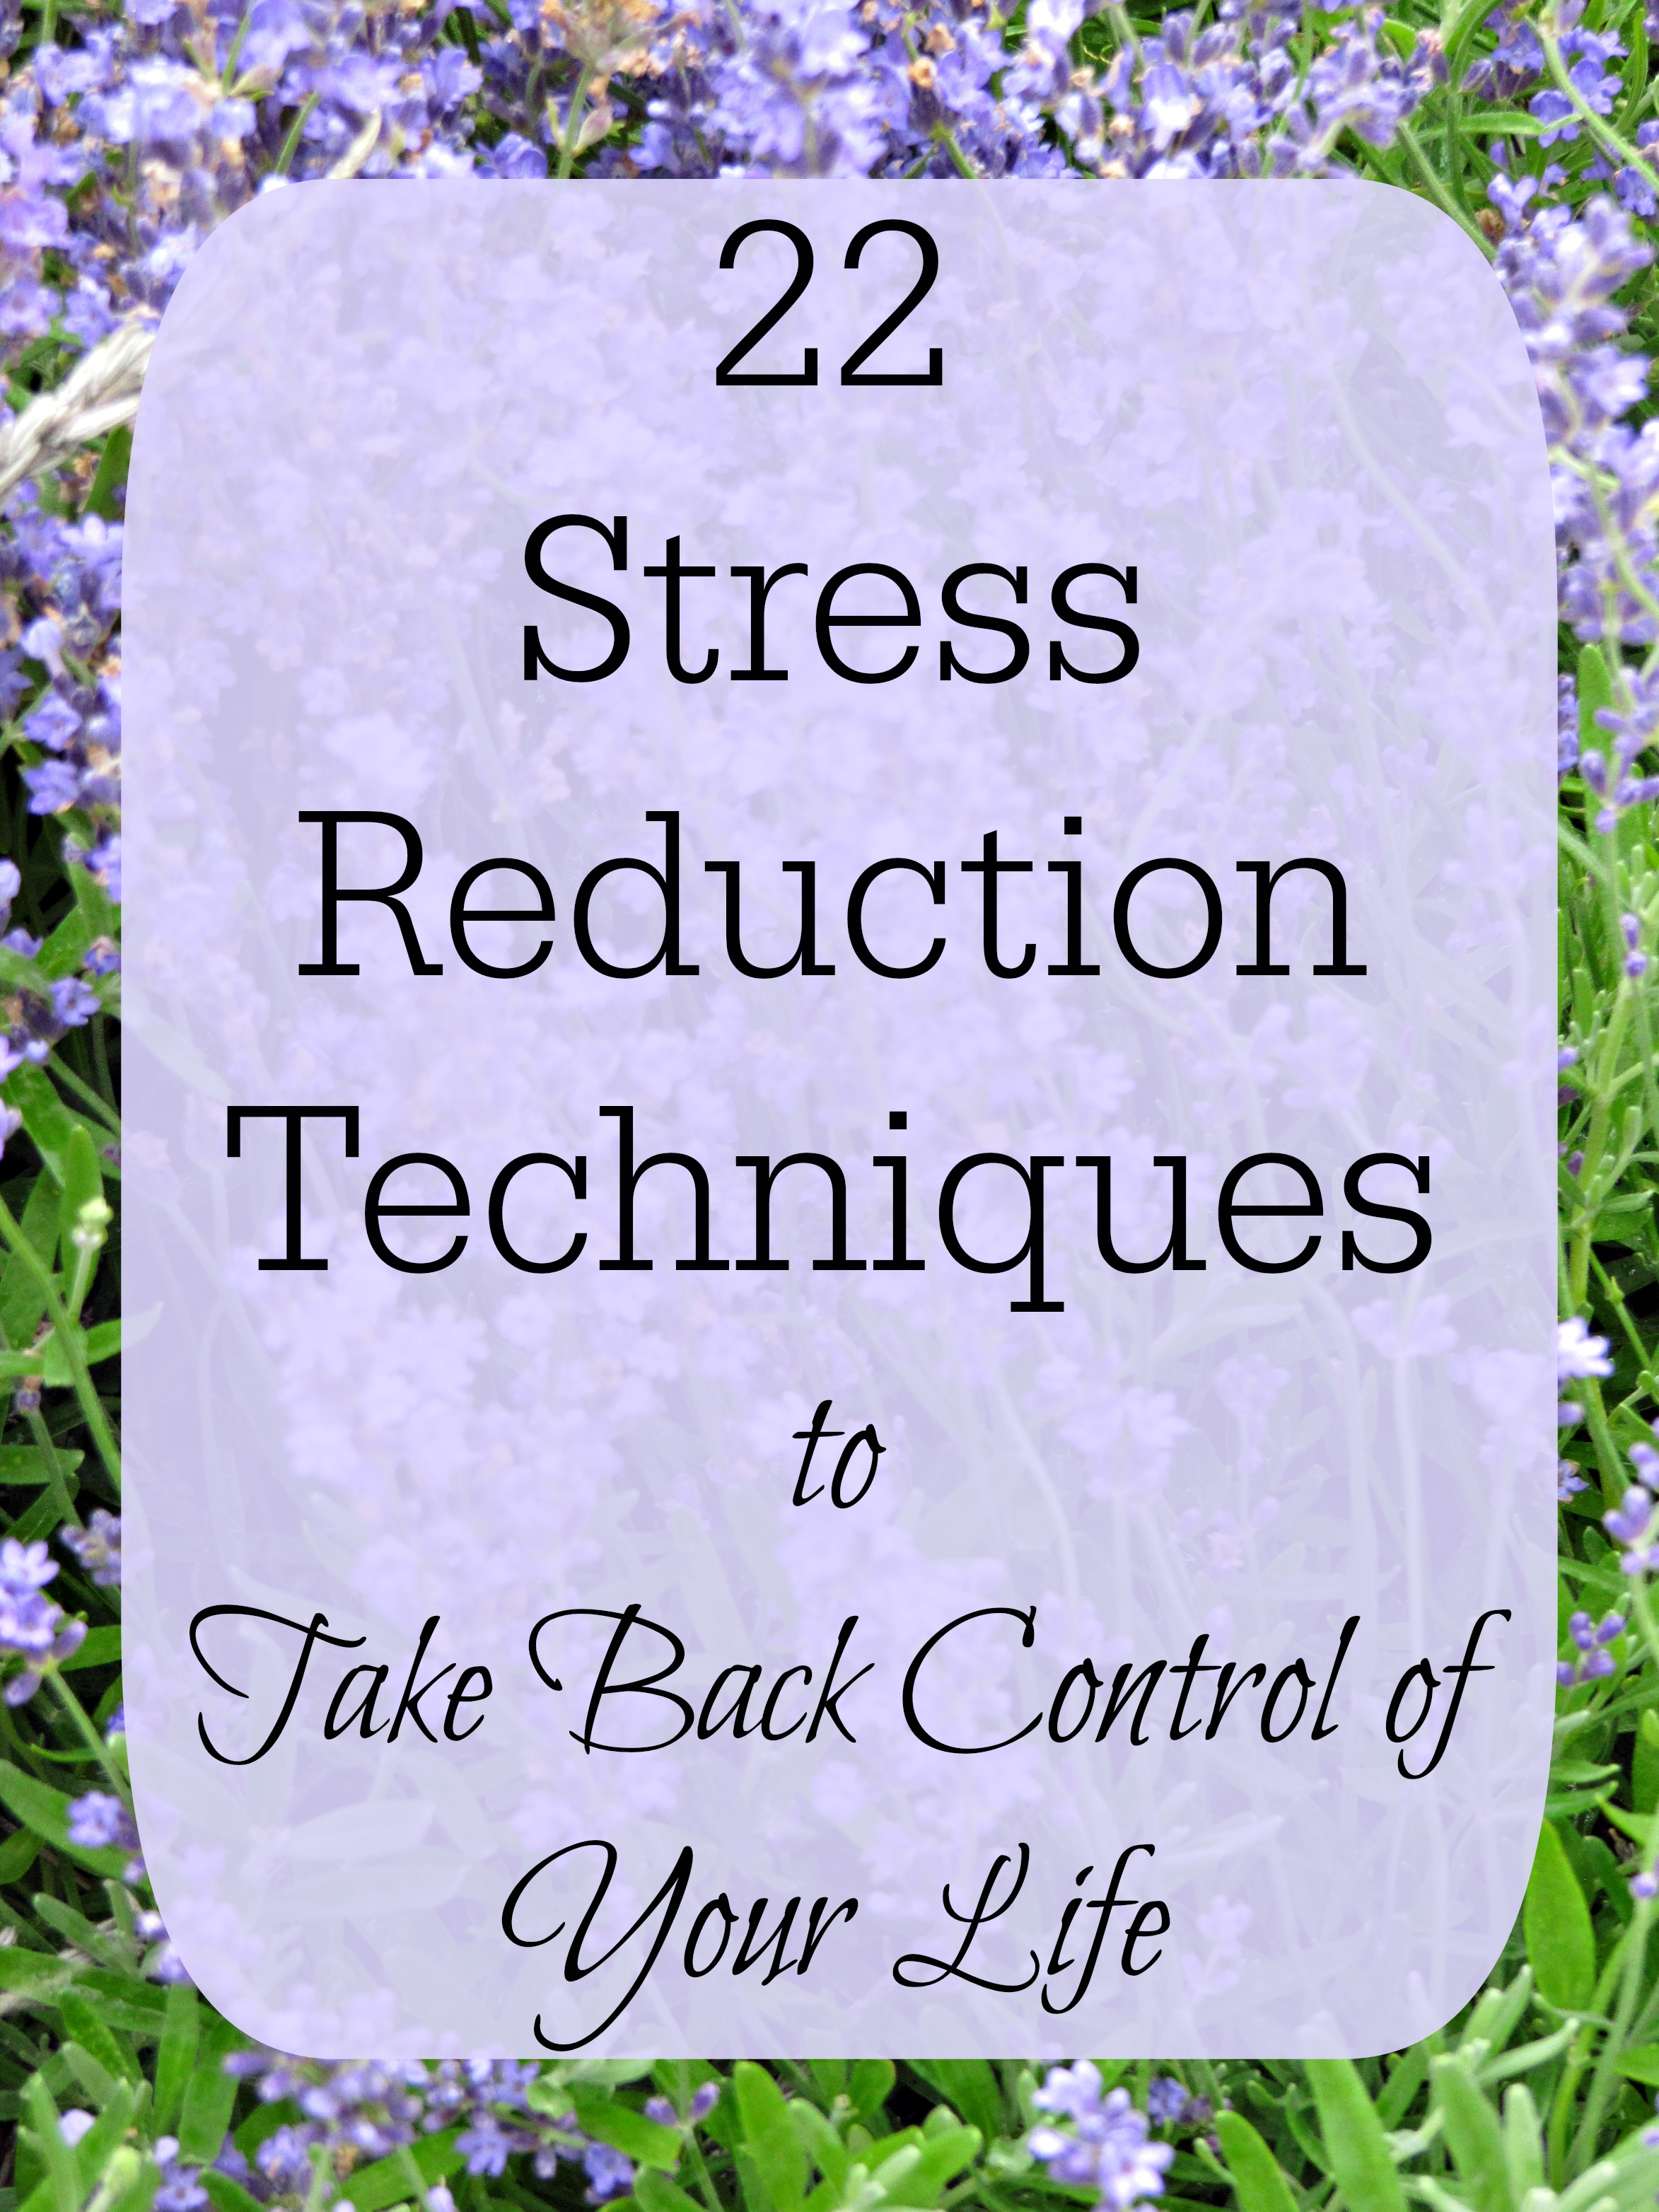 22 Stress Reduction Techniques to Take Control of Your Life